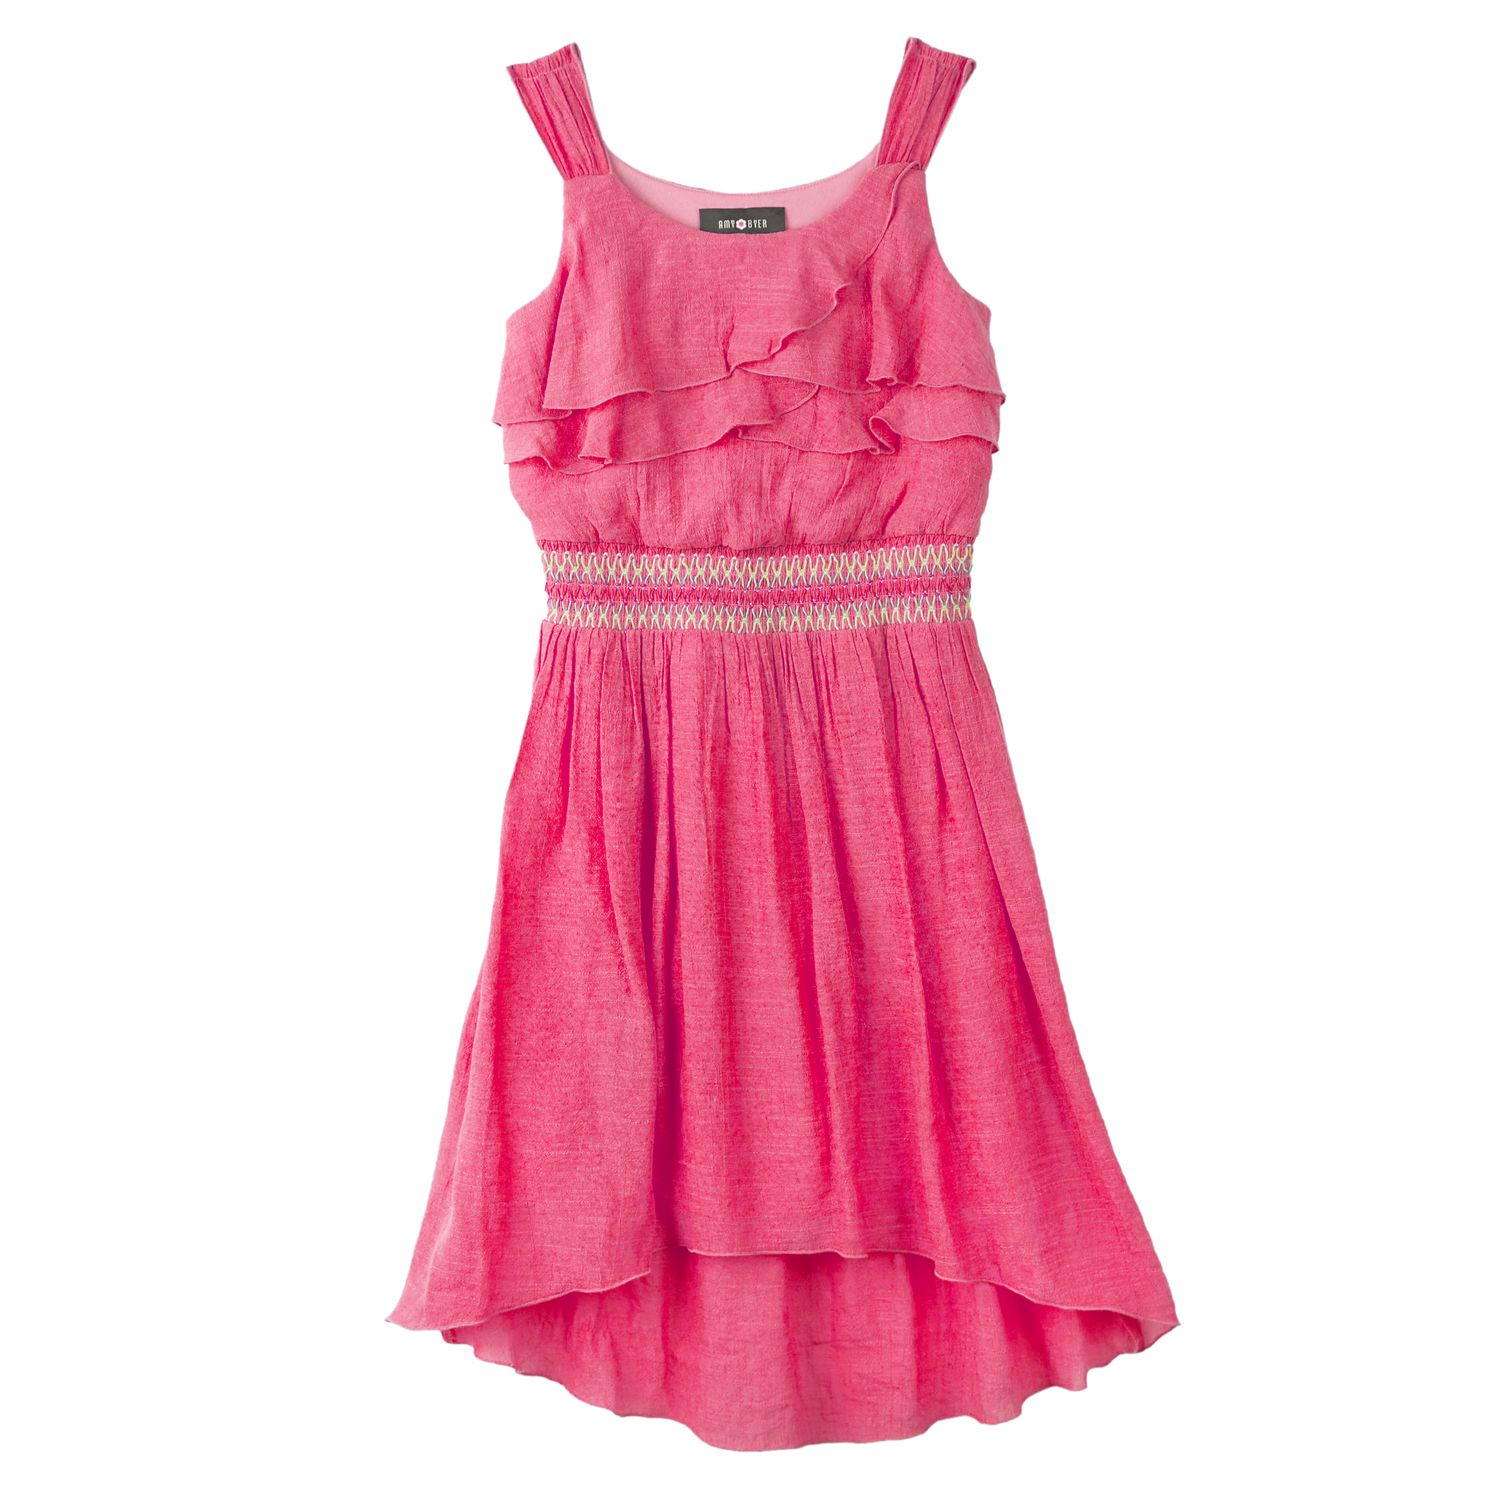 ce752f5c312dd3 CUSTOMER REVIEW IZ Amy Byer Ruffled Hi-Low Dress - Girls 7-16 ...